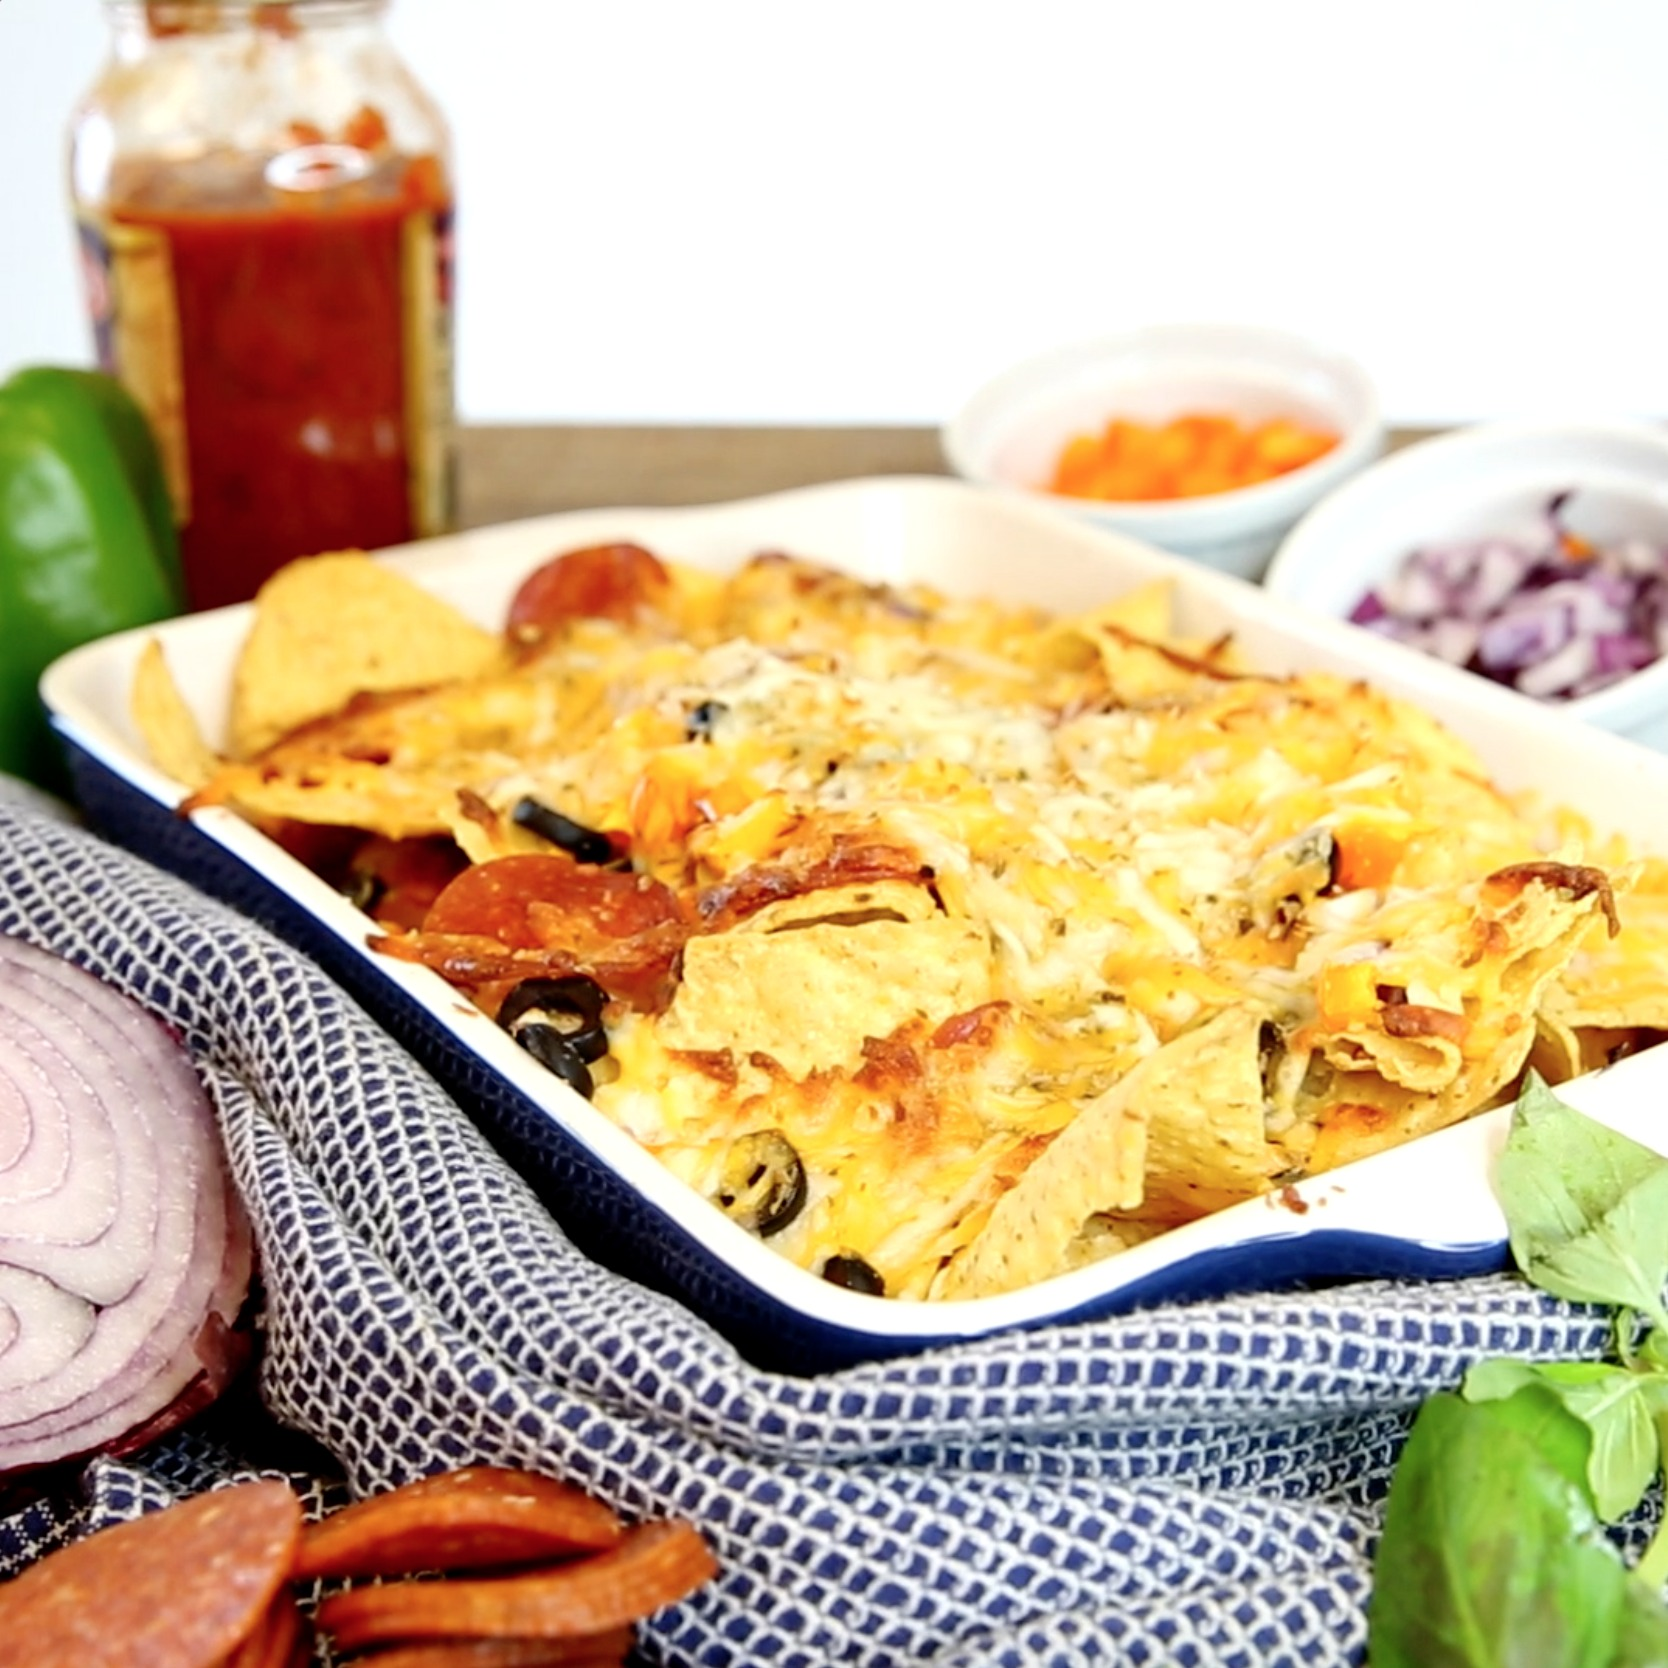 These Pizza Nachos are all we want to eat forever and ever